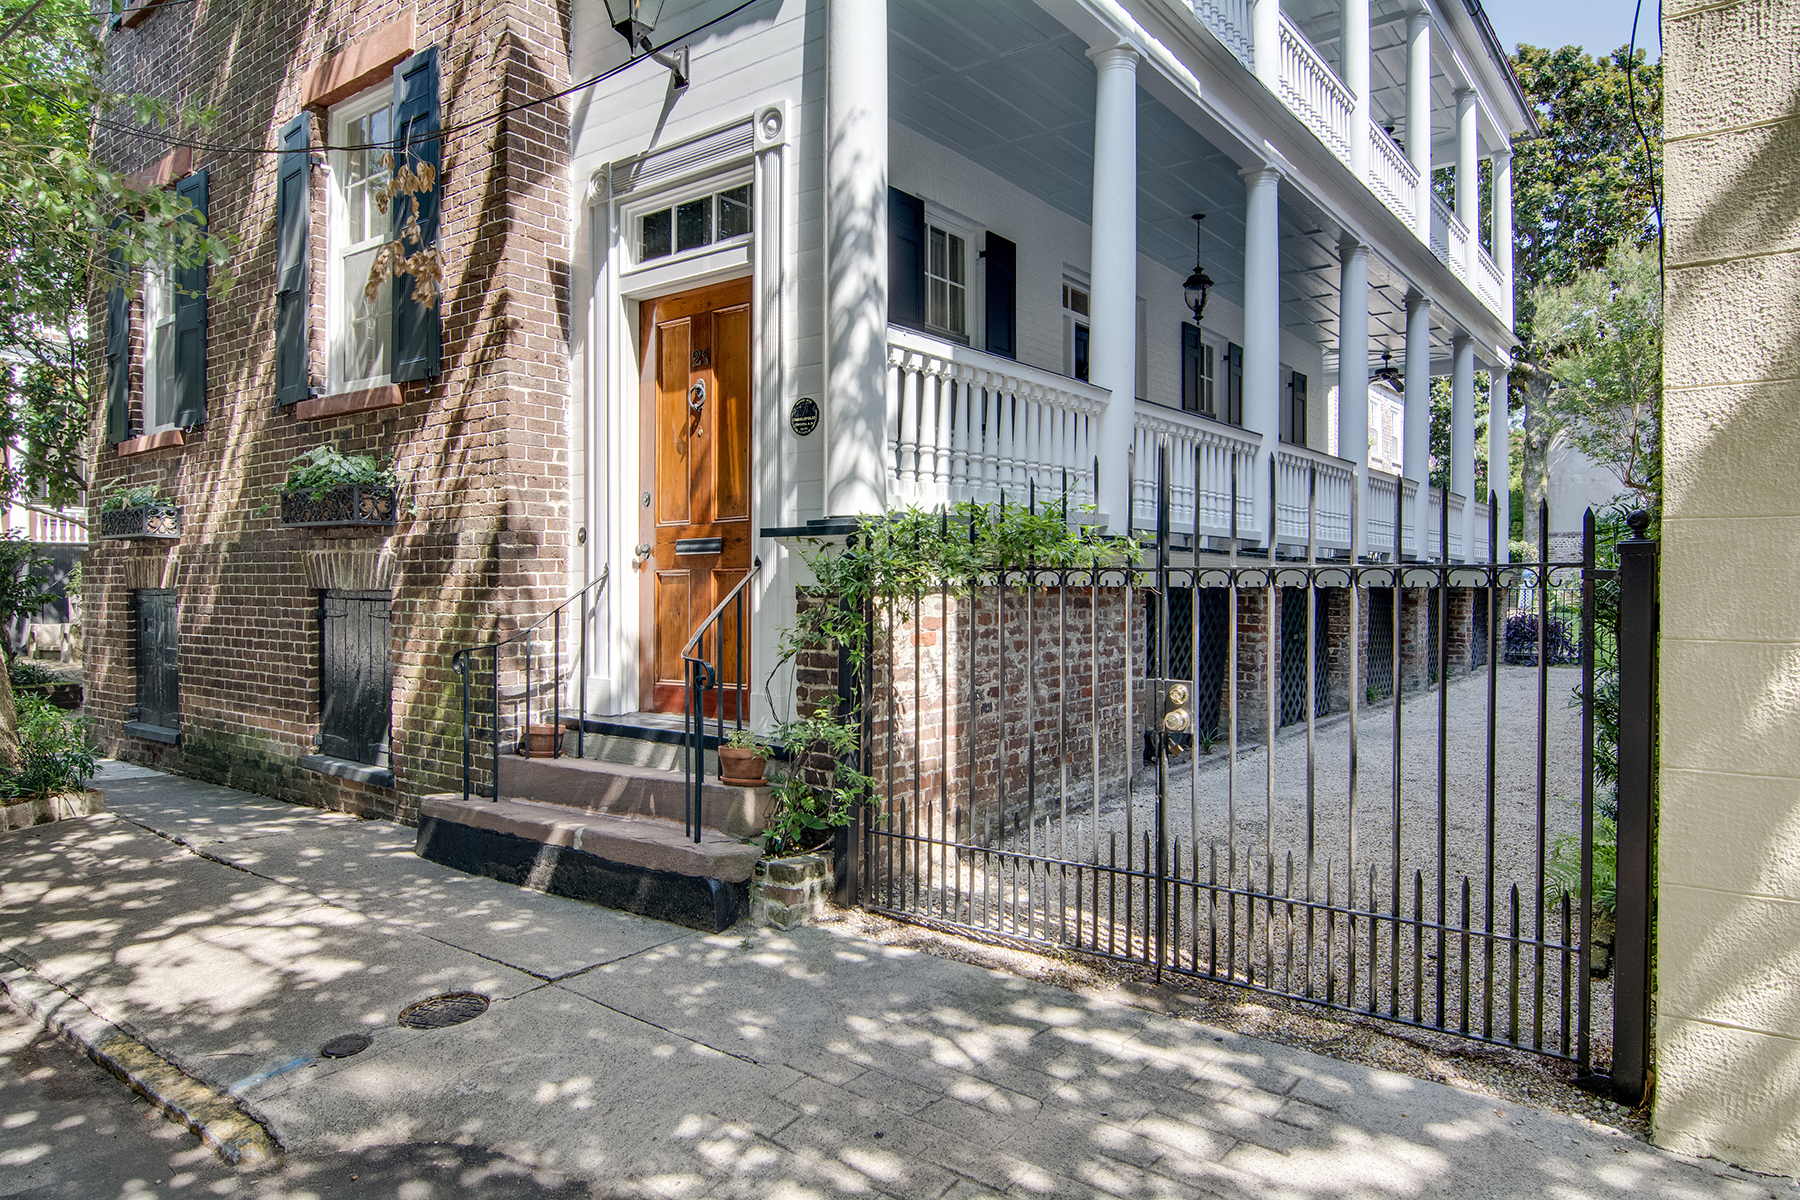 Single Family Home for Sale at Quintessential 19th Century Ansonborough House 21 Wentworth Street Ansonborough, Charleston, South Carolina, 29401 United States